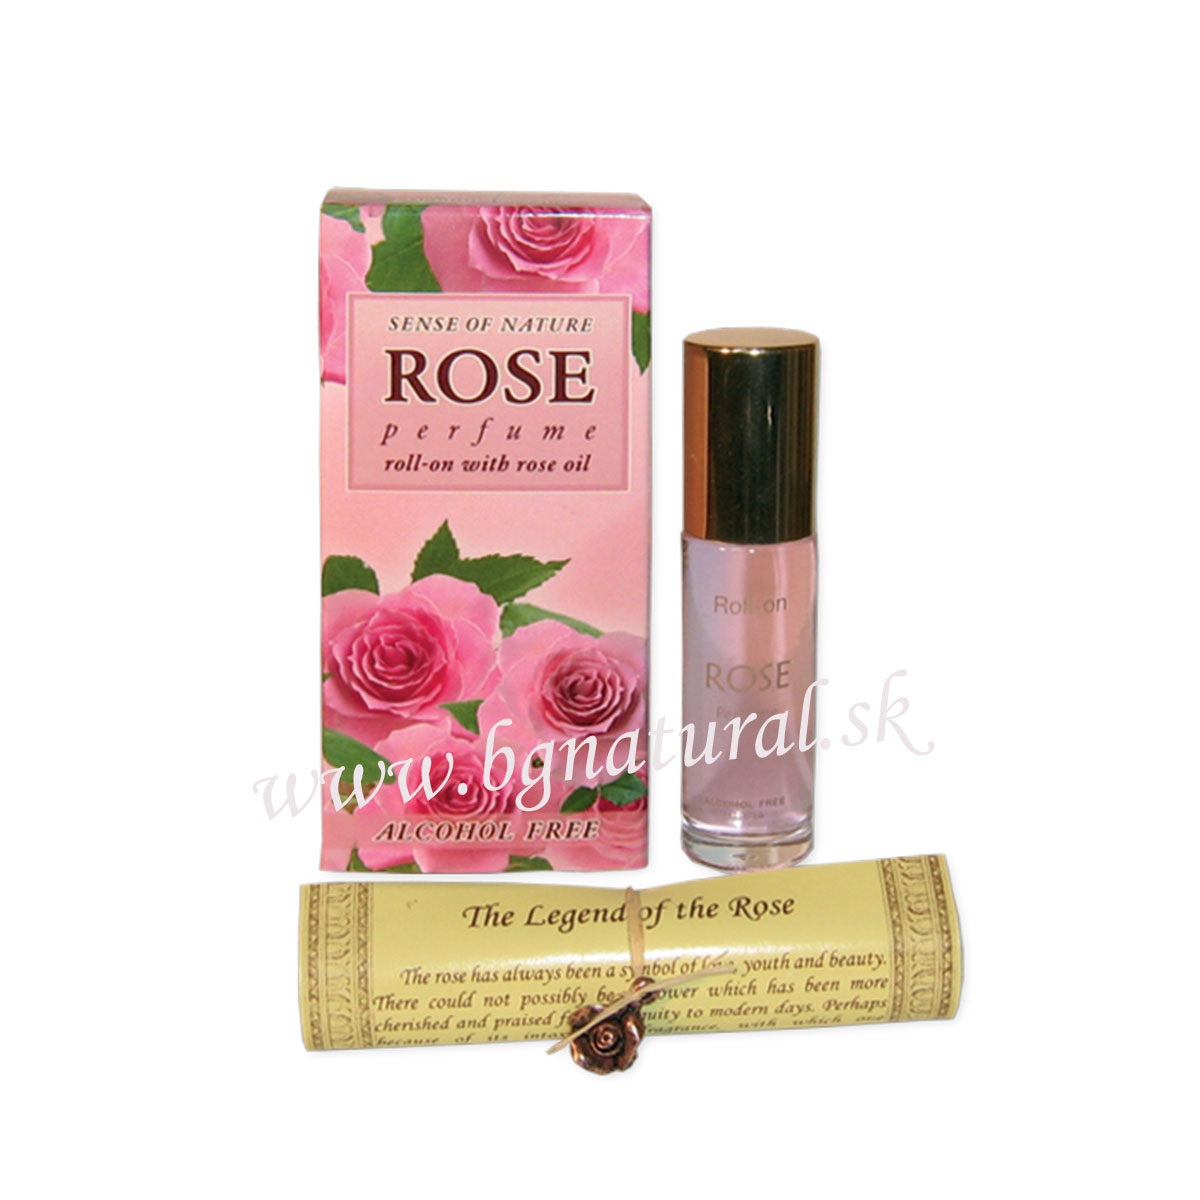 ROSE PERFUME roll-on alkohol free